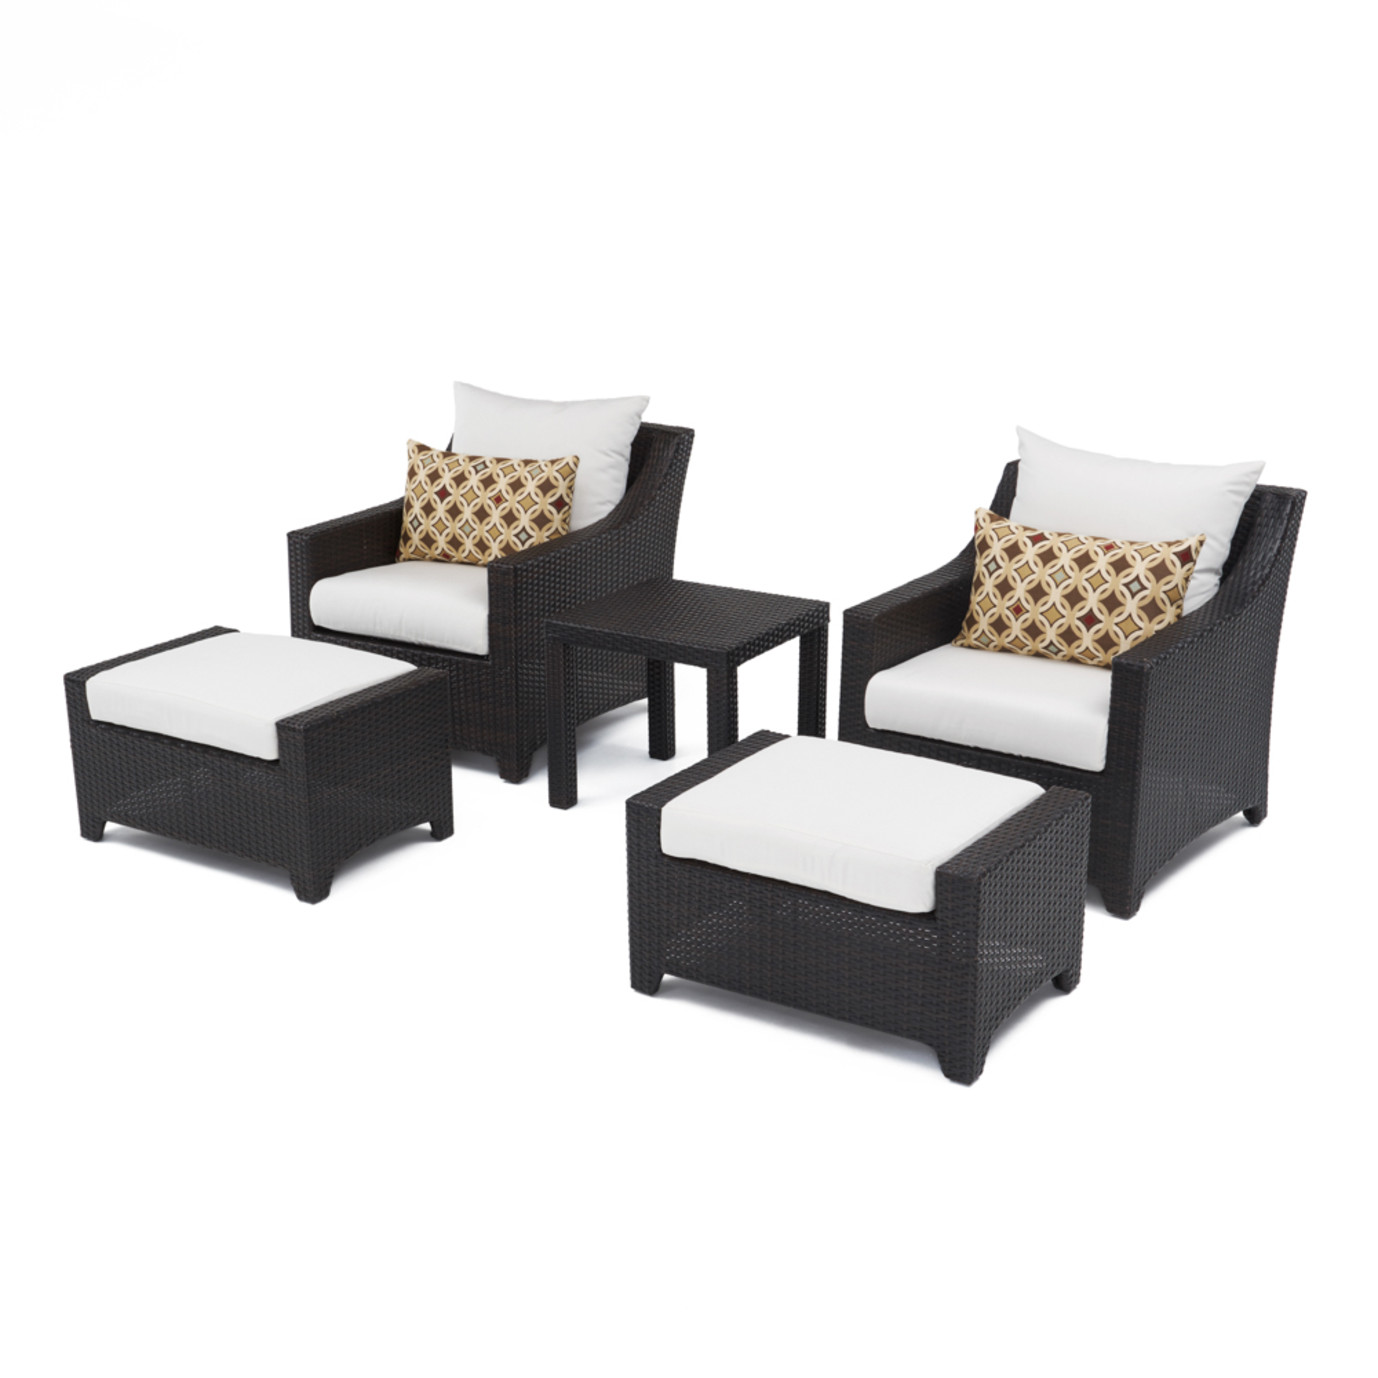 Deco™ 5pc Club Chair and Ottoman Set - Moroccan Cream